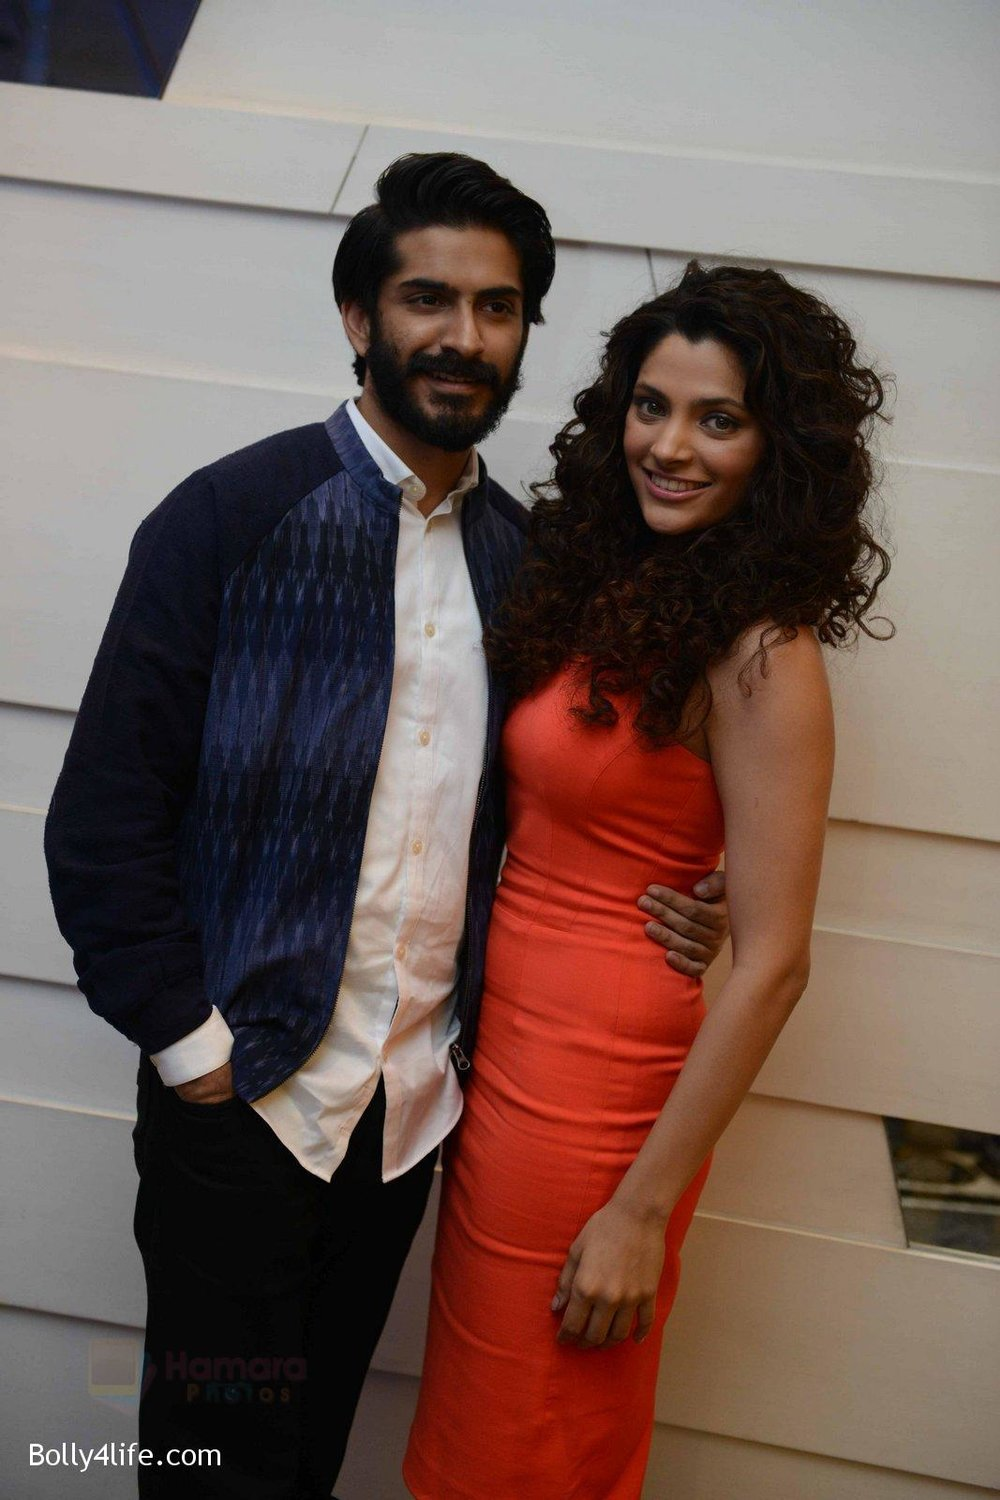 Harshvardhan-Kapoor-Saiyami-Kher-at-Mirzya-press-meet-in-Delhi-on-3rd-Oct-2016-54.jpg